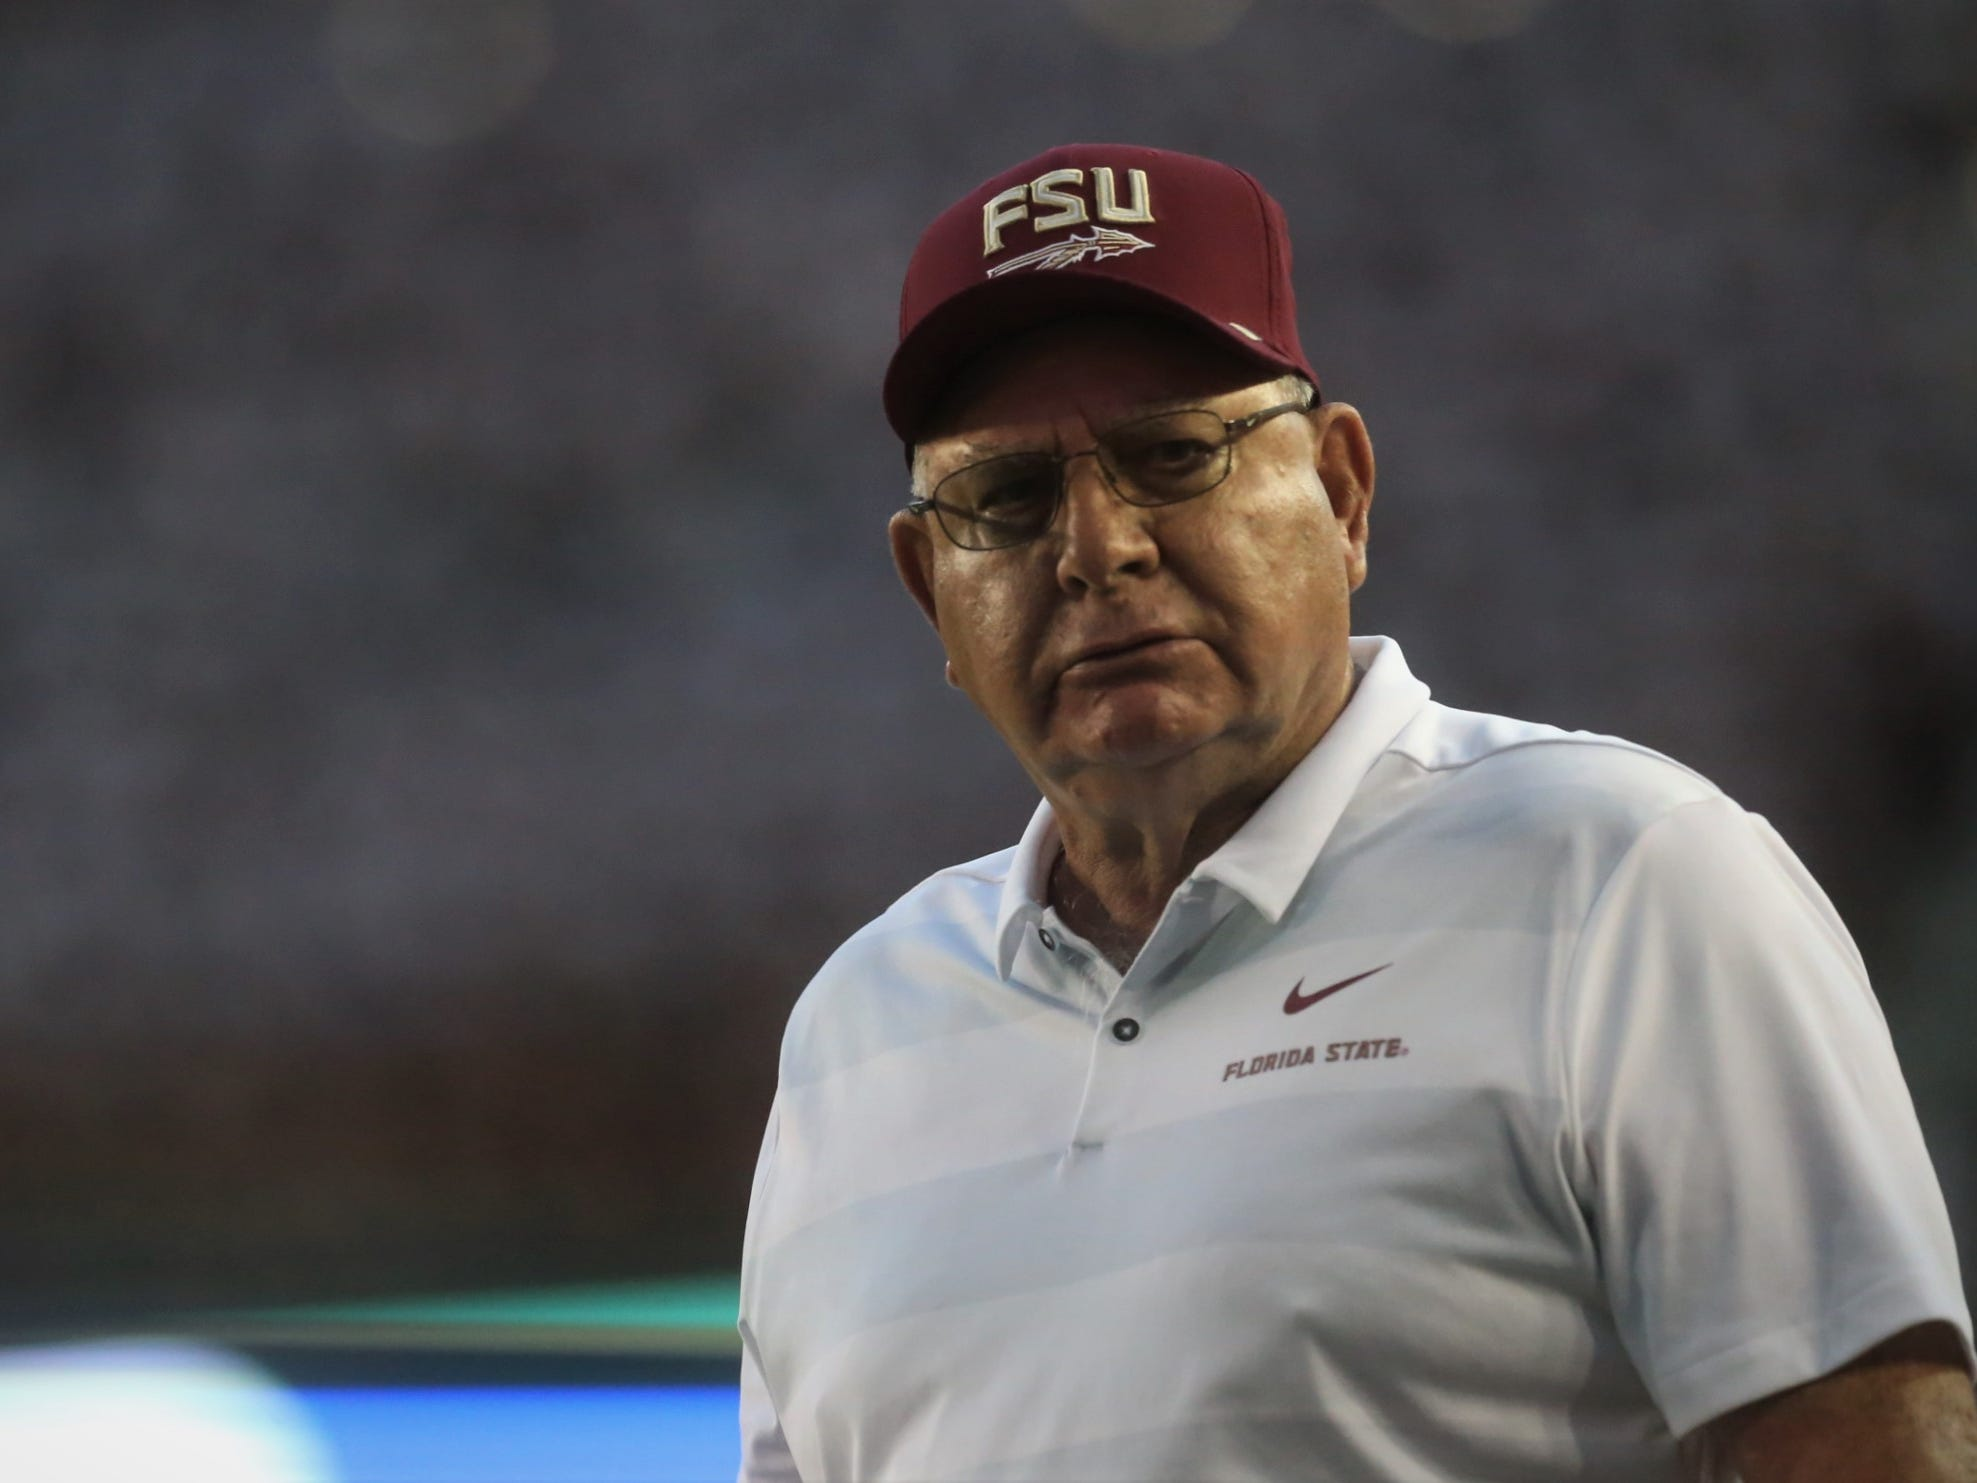 Florida State special assistant coach Mickey Andrews walks the sidelines during the Wake Forest game at Doak Campbell Stadium on Saturday, Oct. 20, 2018.